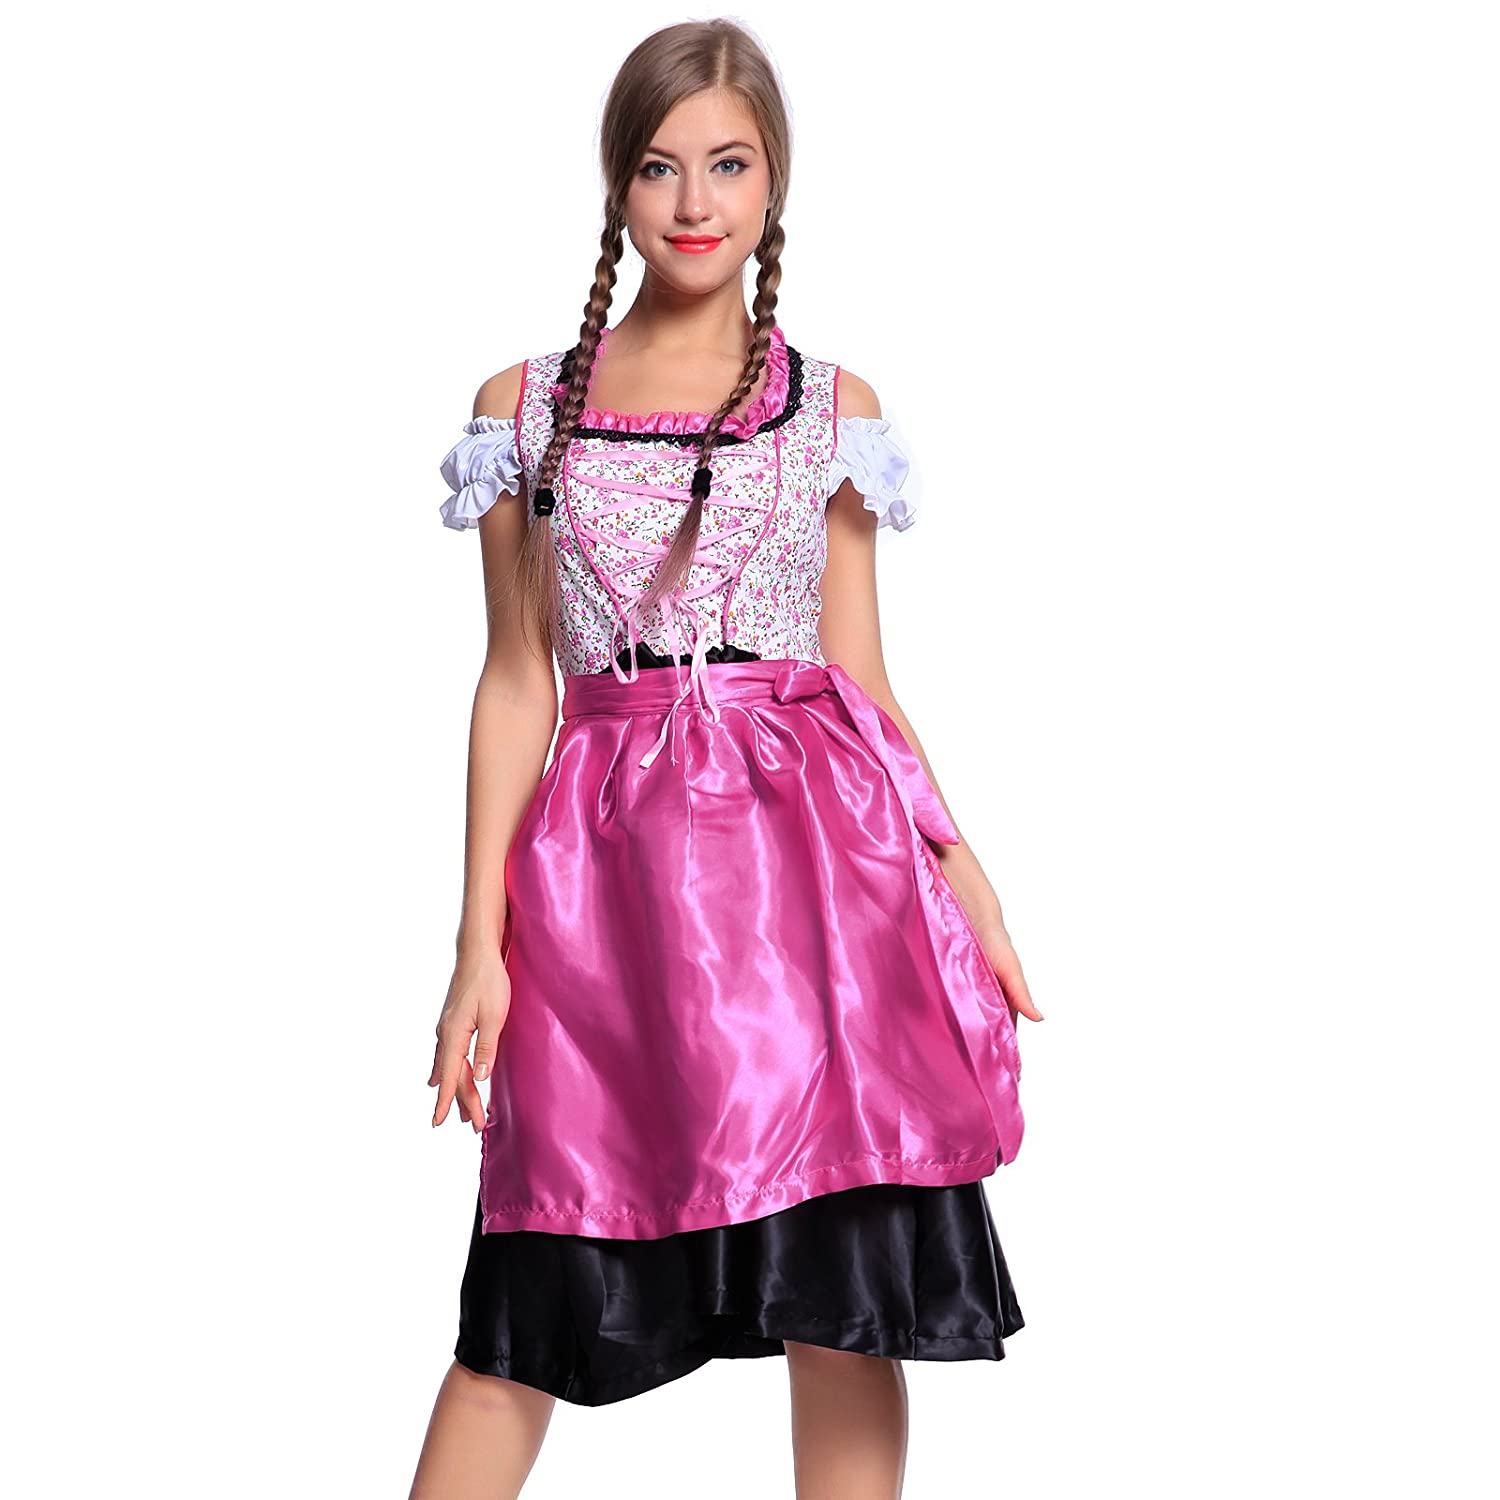 oktoberfest 3tlg karneval tracht kleid trachtenmode dirndl bluse schuerze trachtenkleid. Black Bedroom Furniture Sets. Home Design Ideas